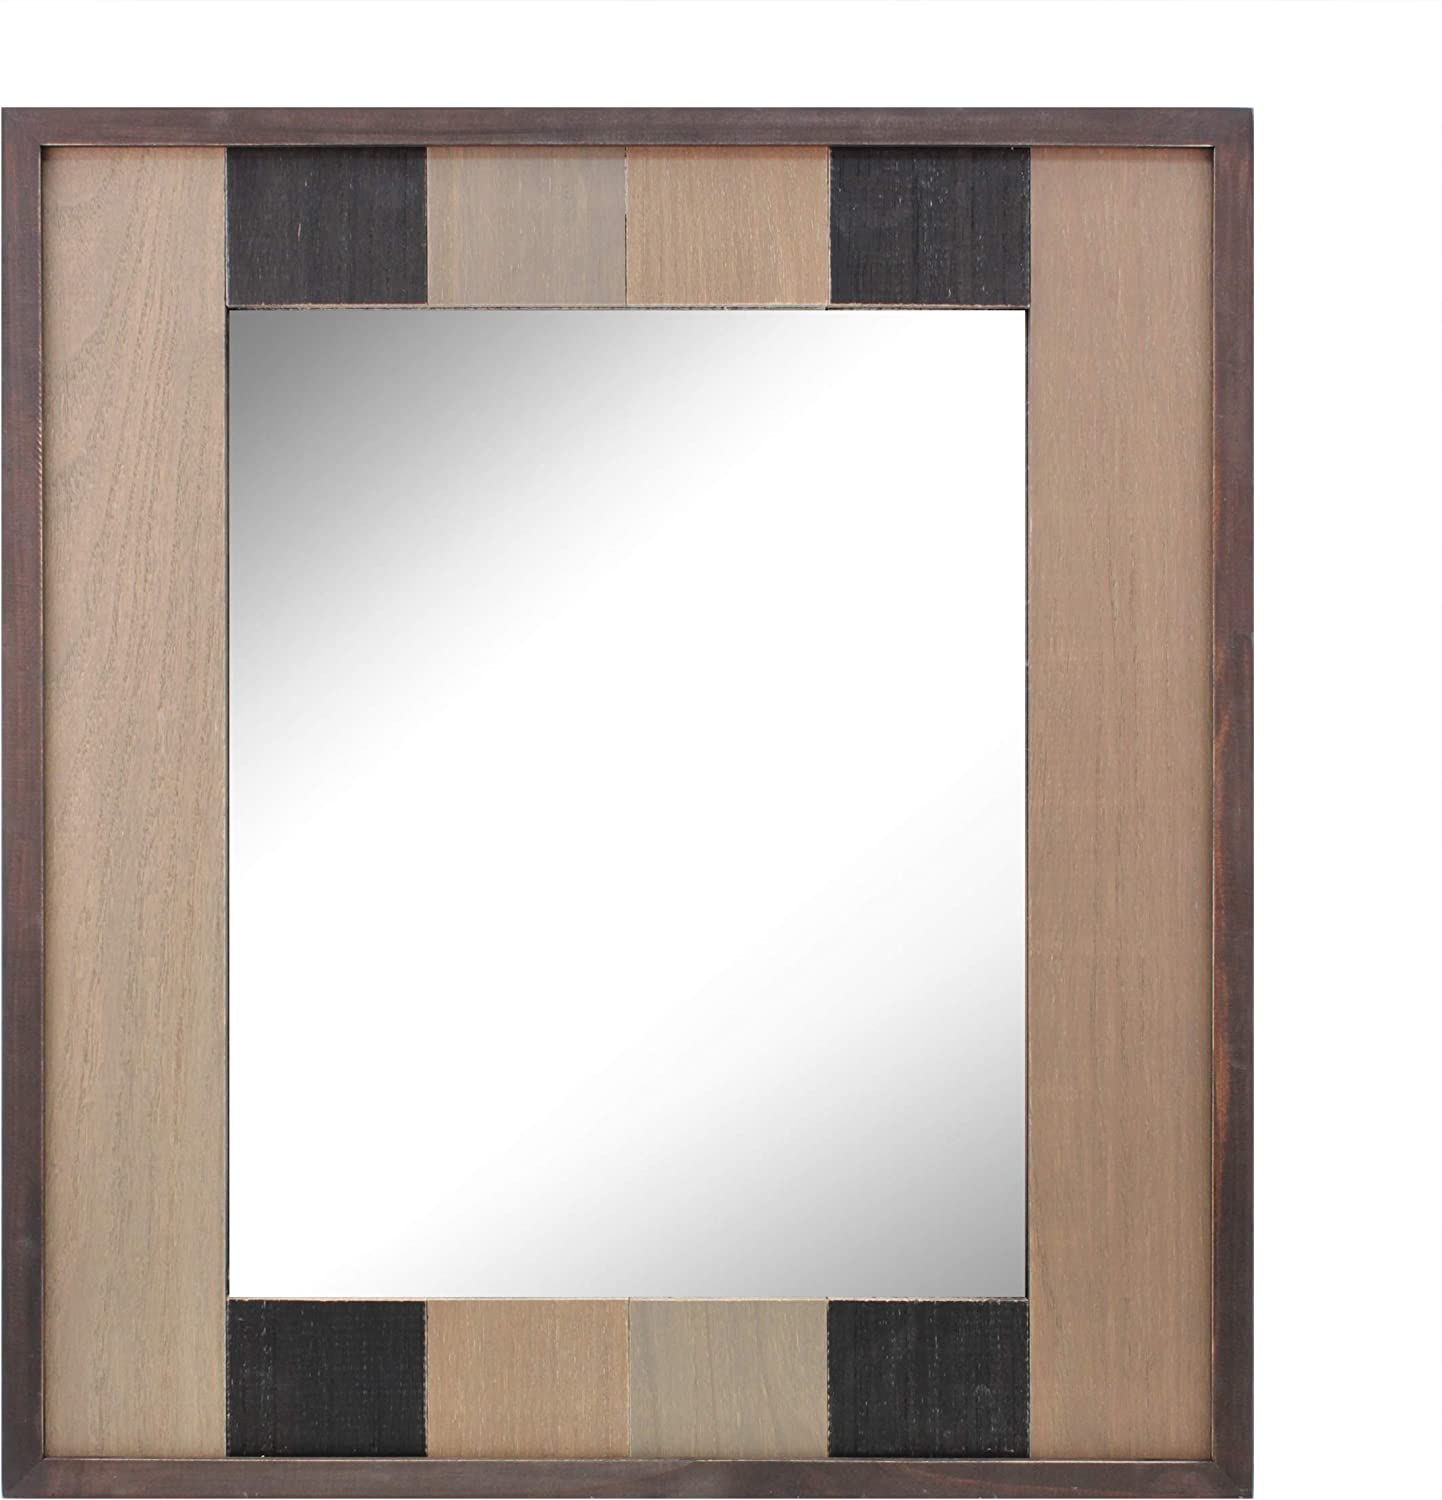 Stonebriar Rectangle Wood Plank Hanging Wall Mirror with Attached Mounting Brackets, Rustic Decor Accents for the Bathroom, Living Room, Bedroom, Office, and Hallway